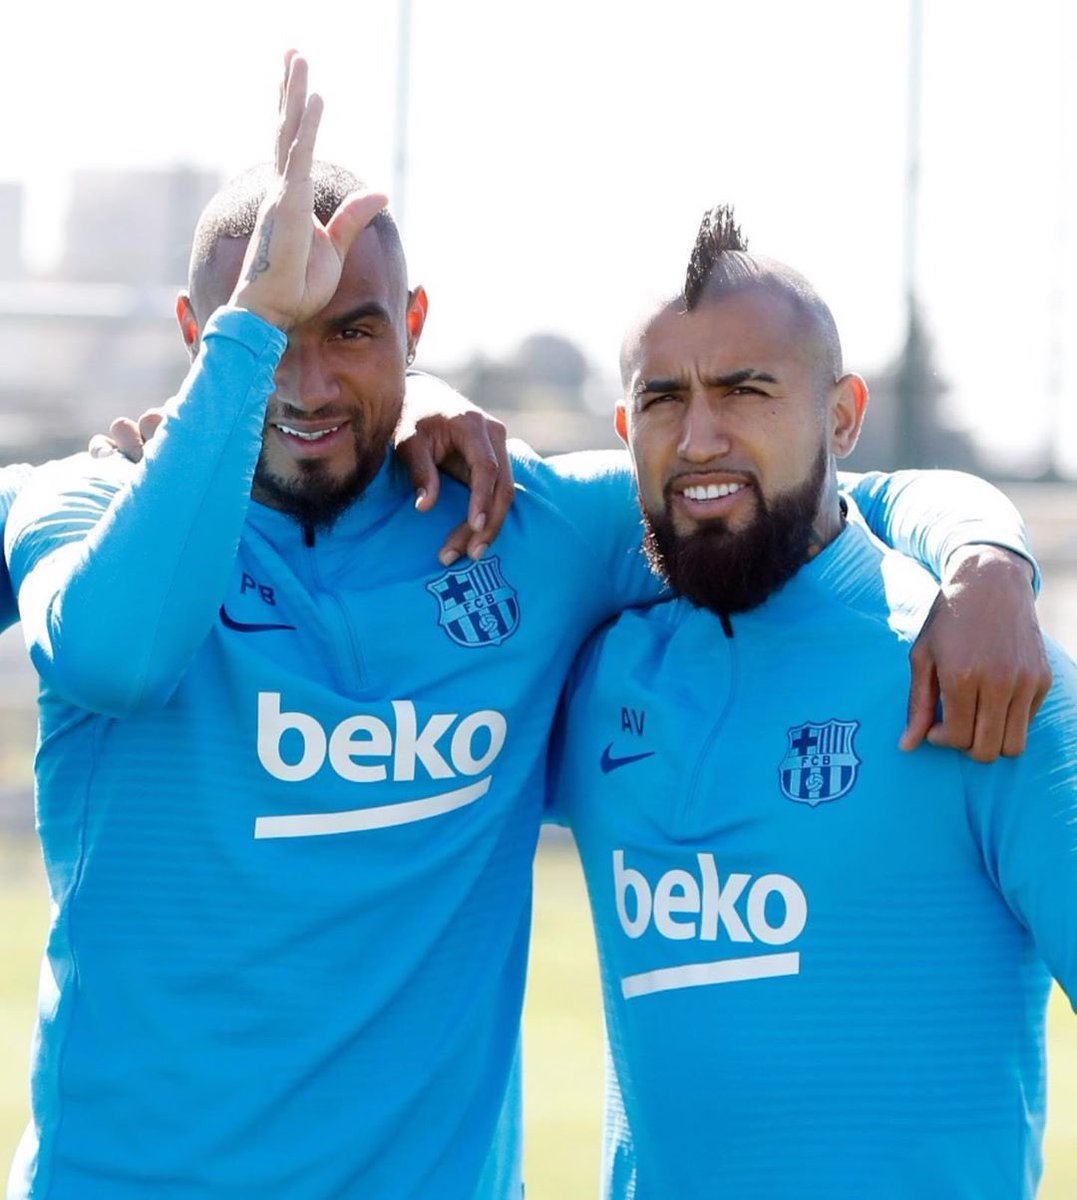 Even if you will wear the wrong colors of Milano 😜😜😜 Mucha suerte Hermano!! 👑 @kingarturo23 https://t.co/SdZZYpTEQX